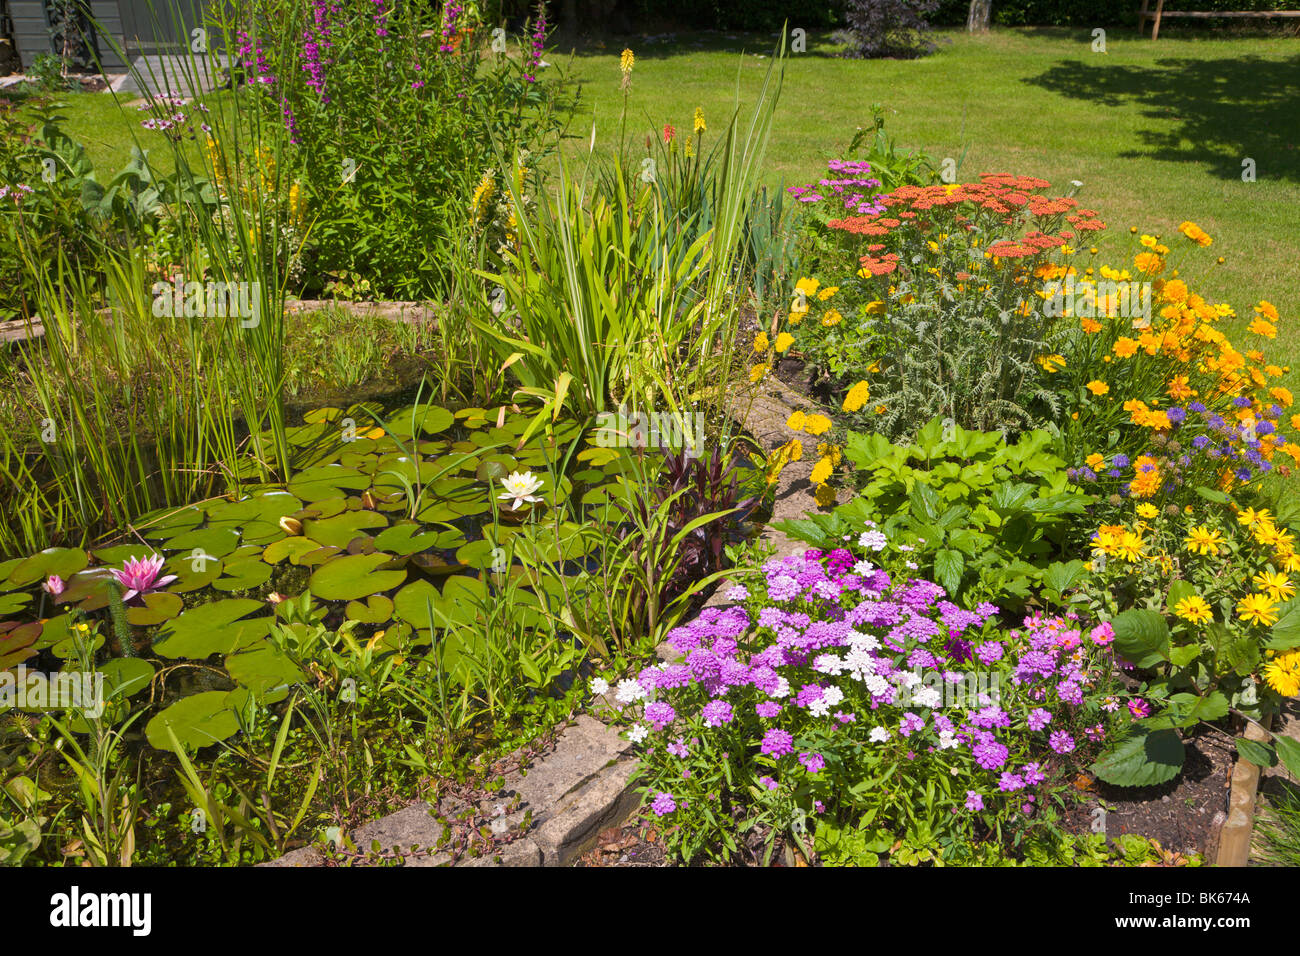 Perennial flower border around a garden pond, Wirral, England - Stock Image